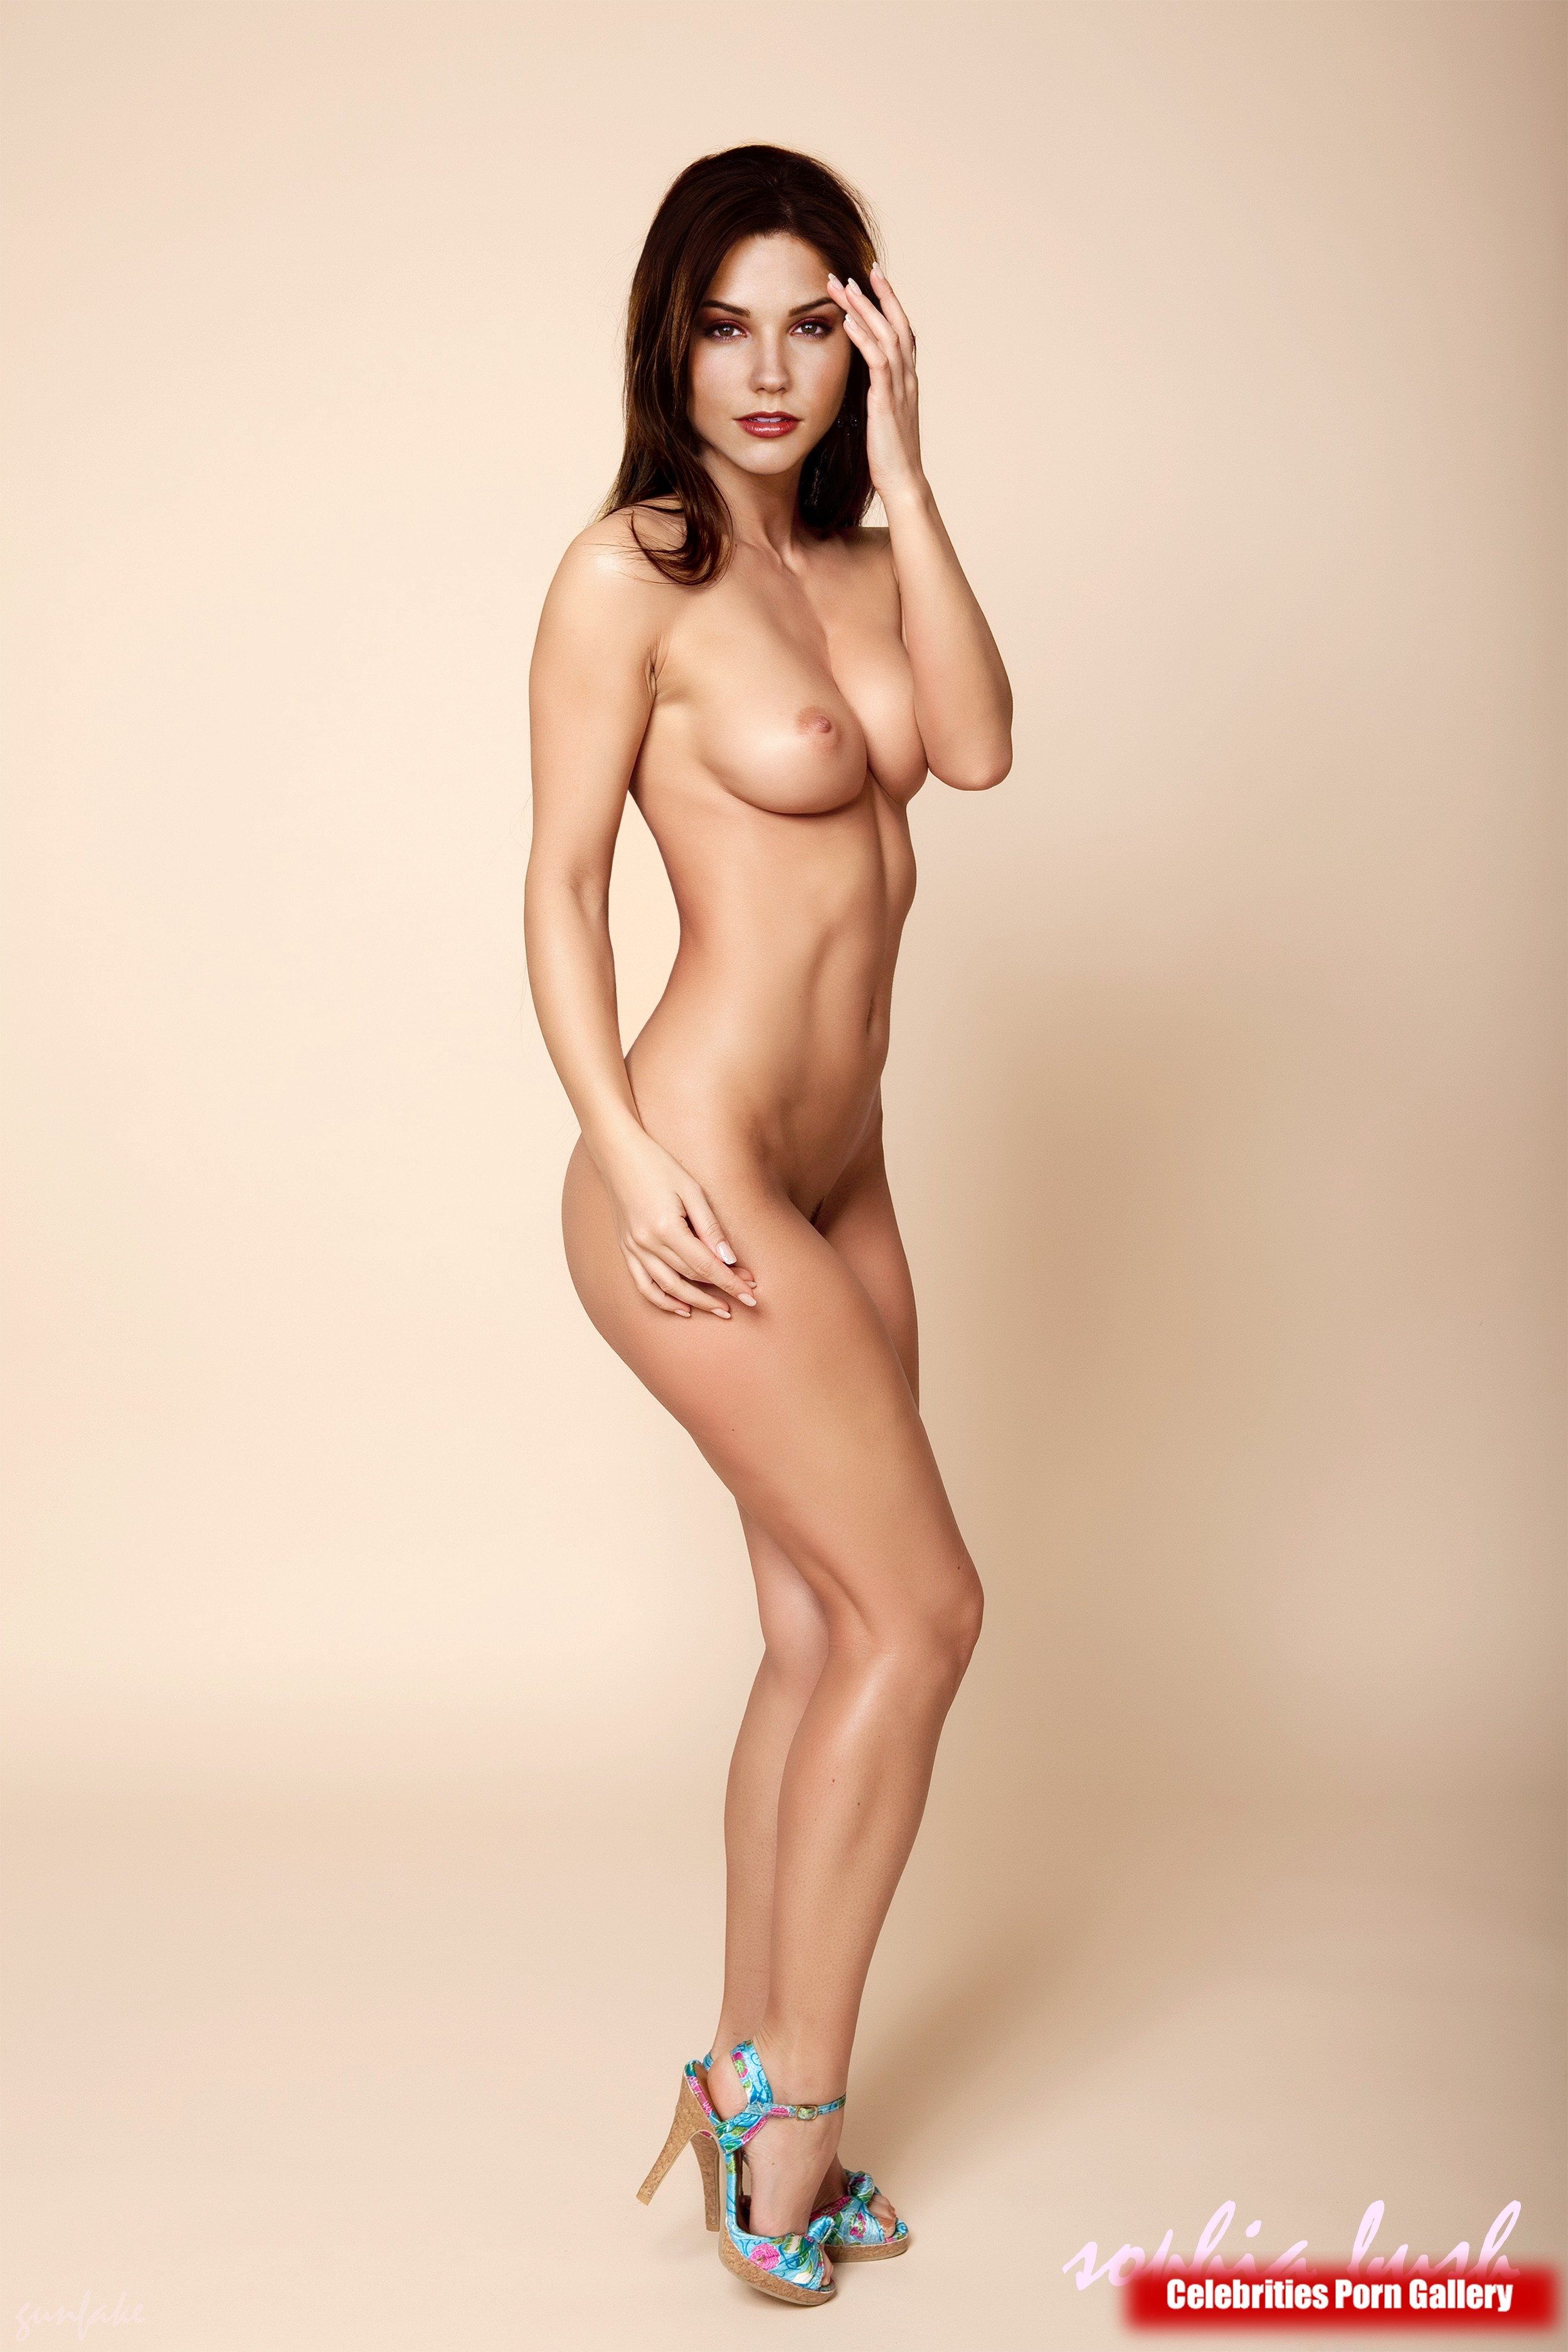 Lily allen sexy naked